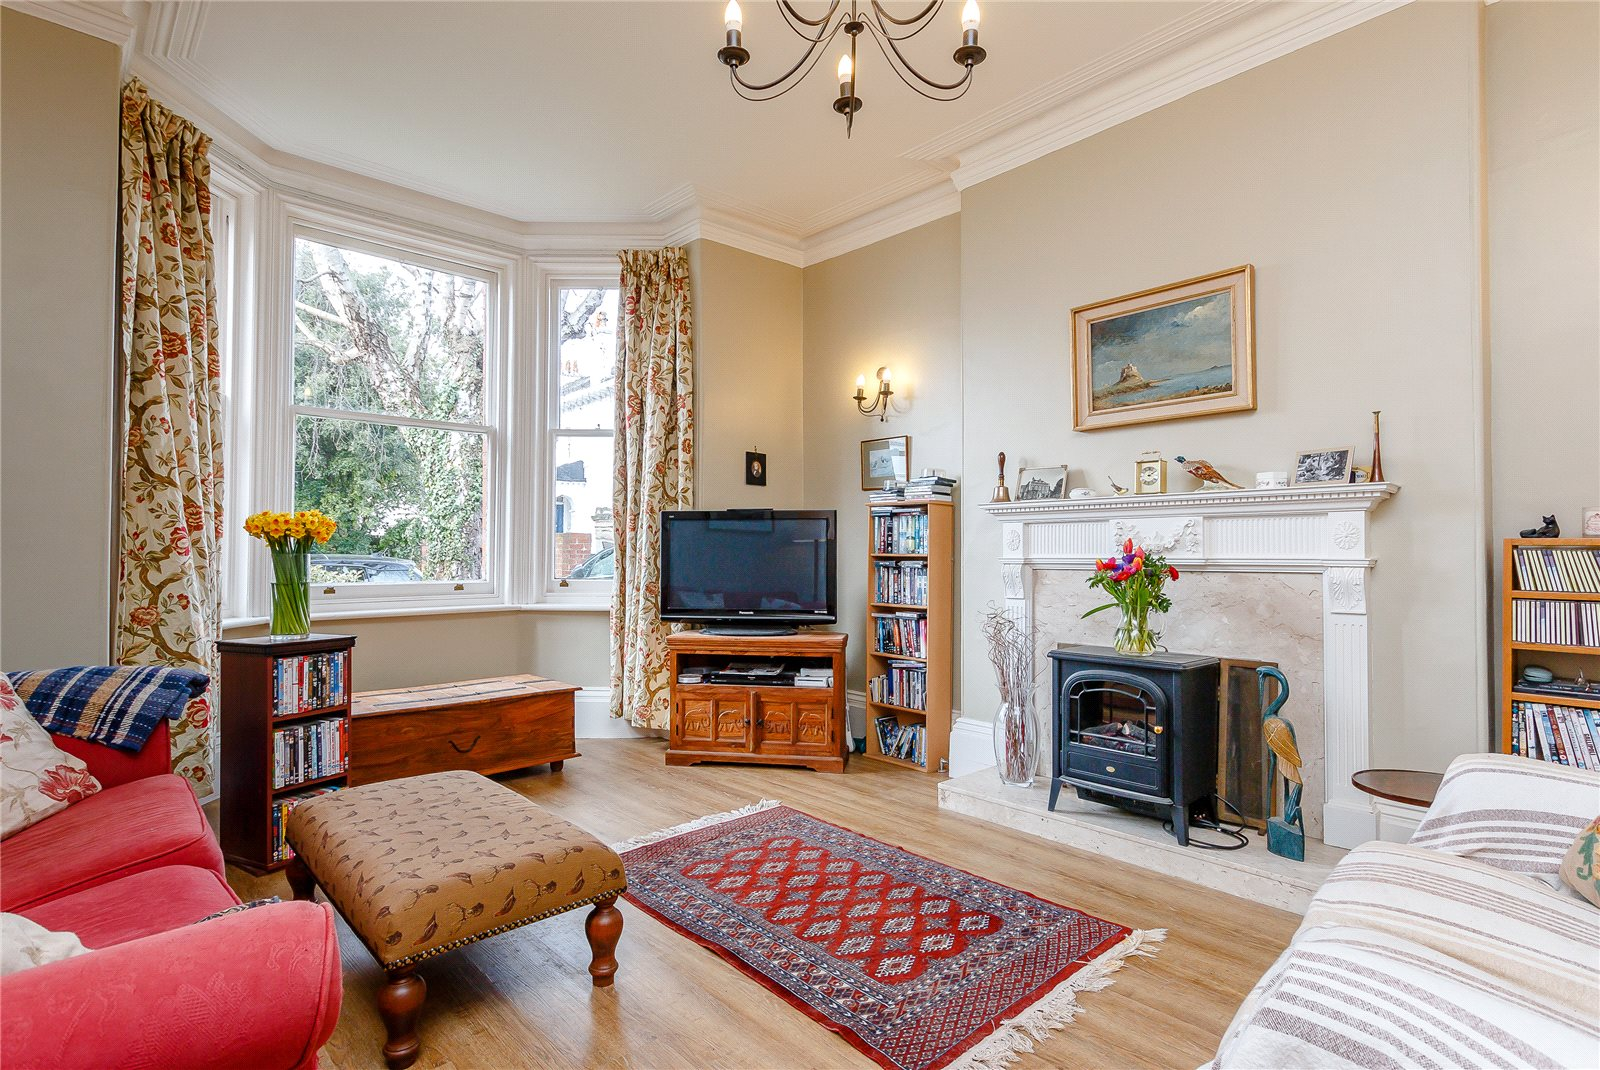 Single Family Home for Sale at Lyndhurst Road, Exeter, Devon, EX2 Exeter, England